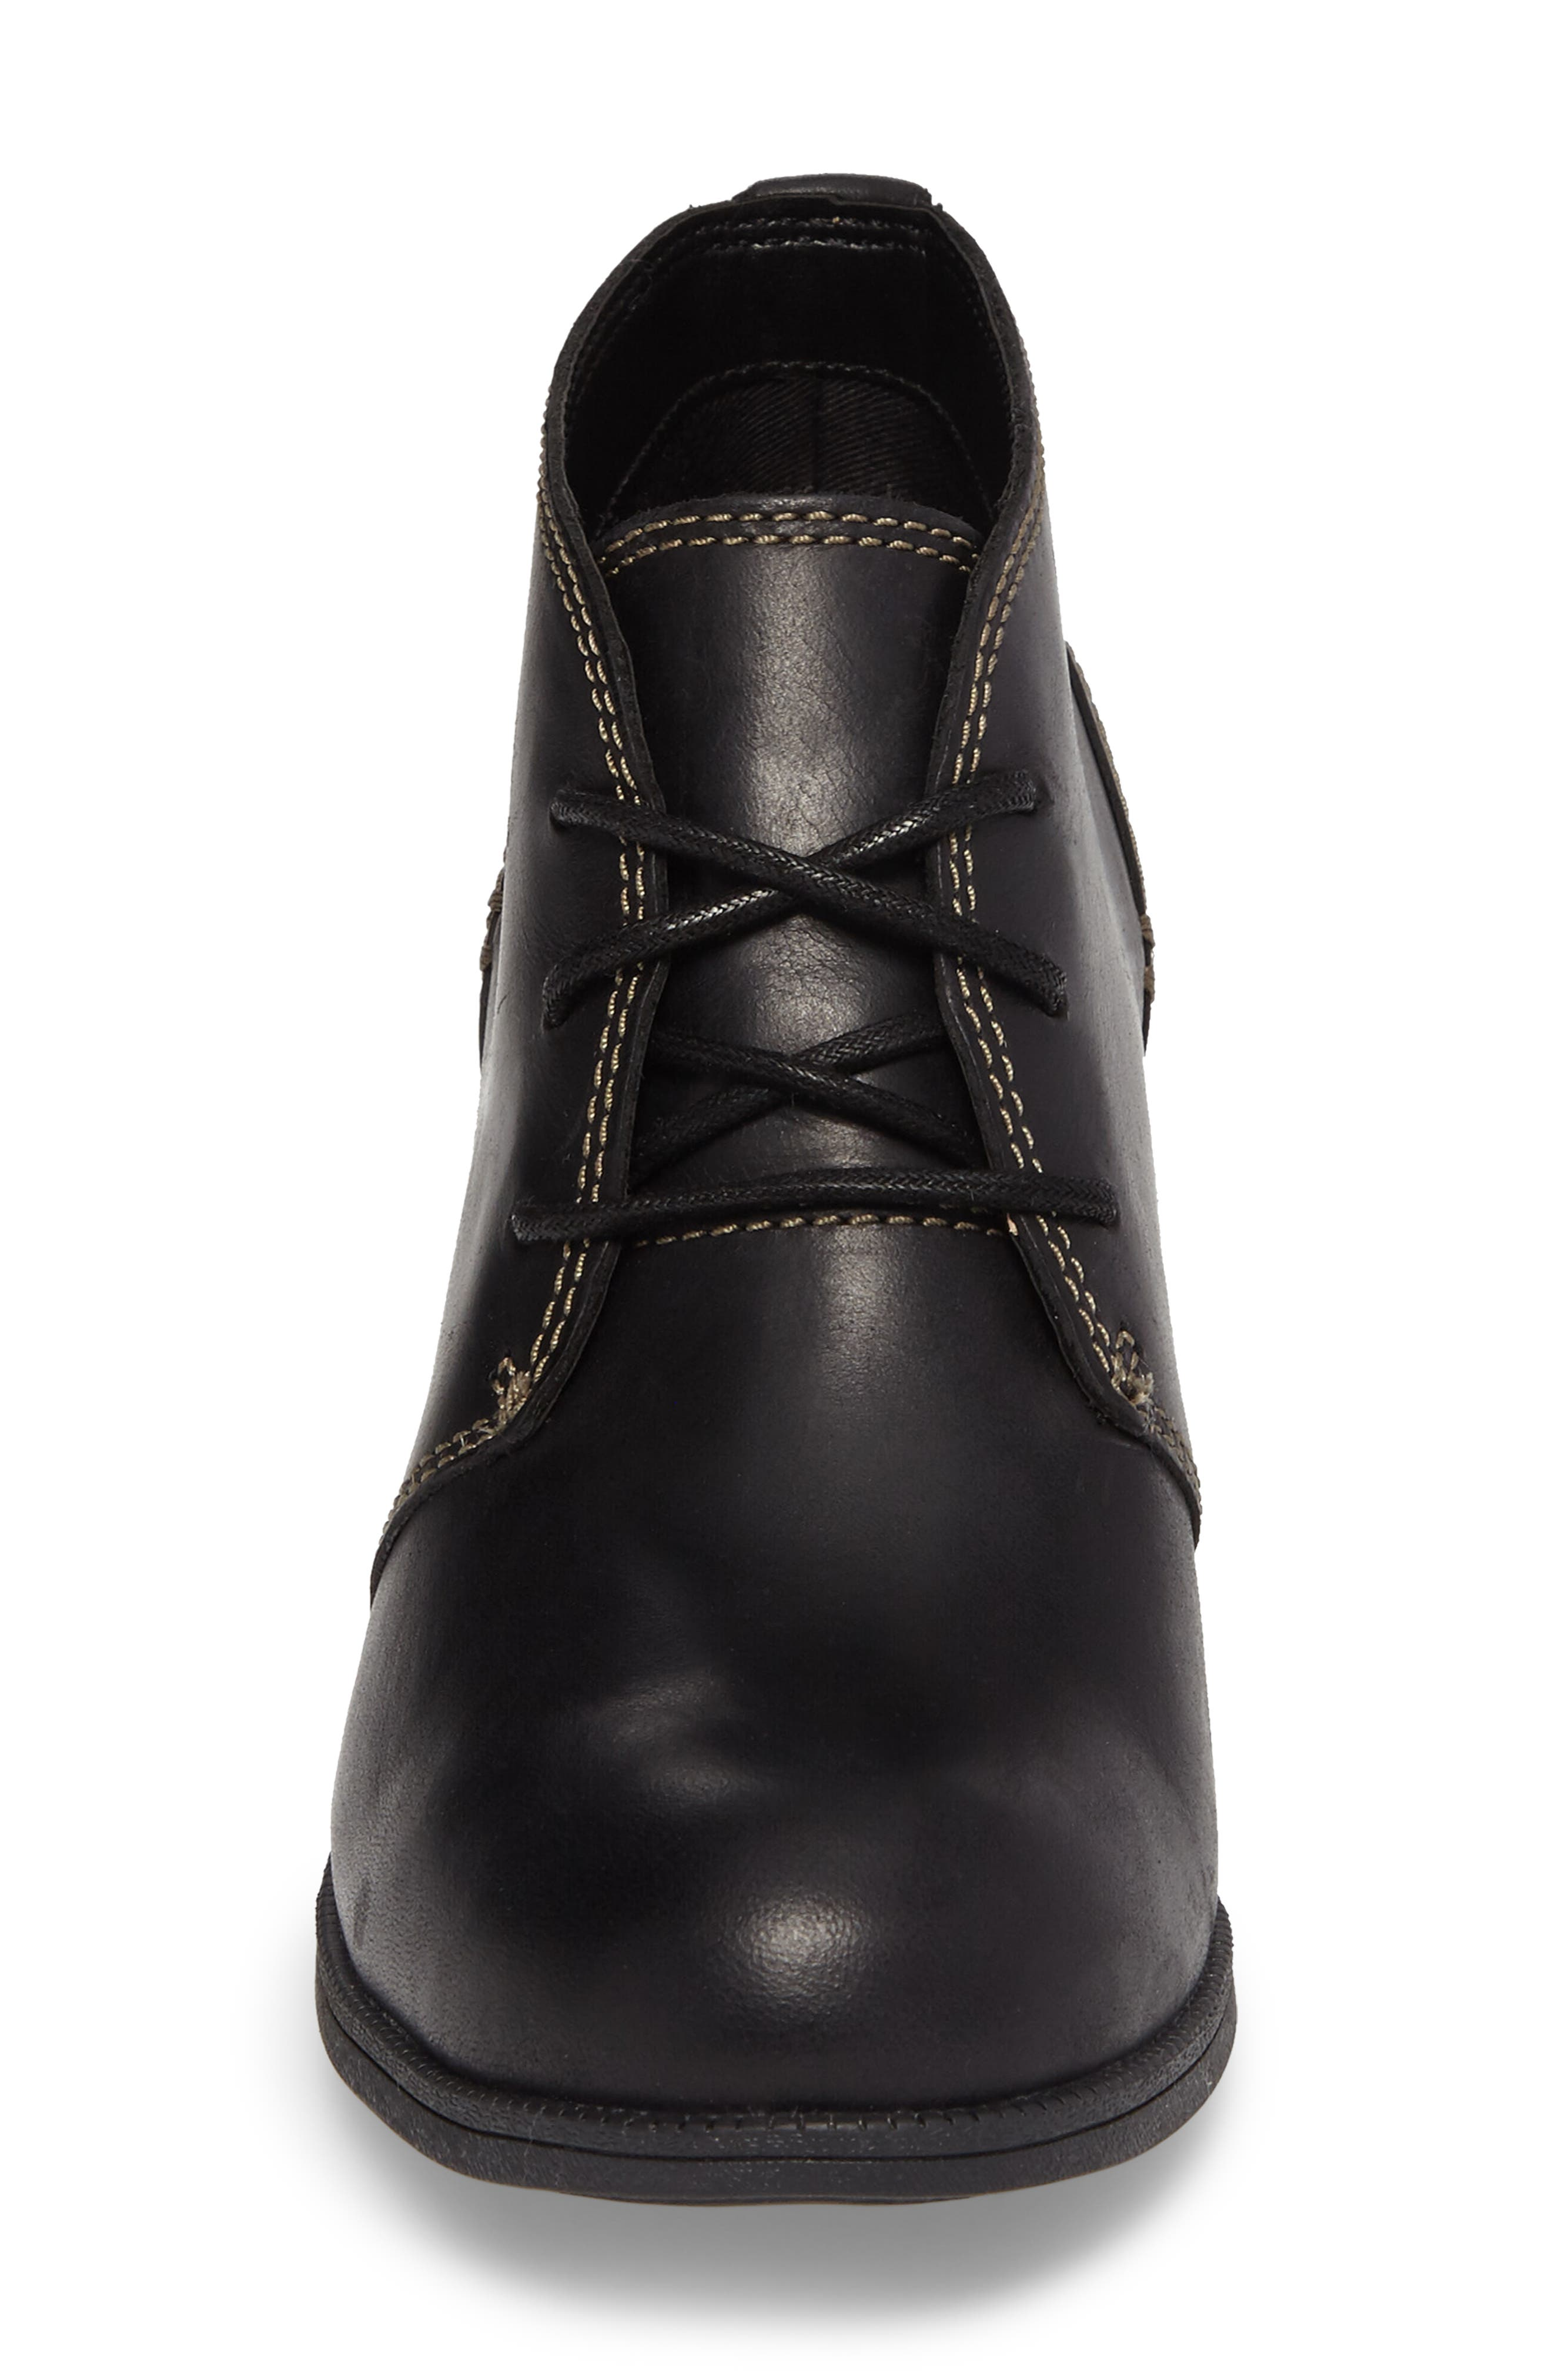 Maypearl Floral Boot,                             Alternate thumbnail 4, color,                             001